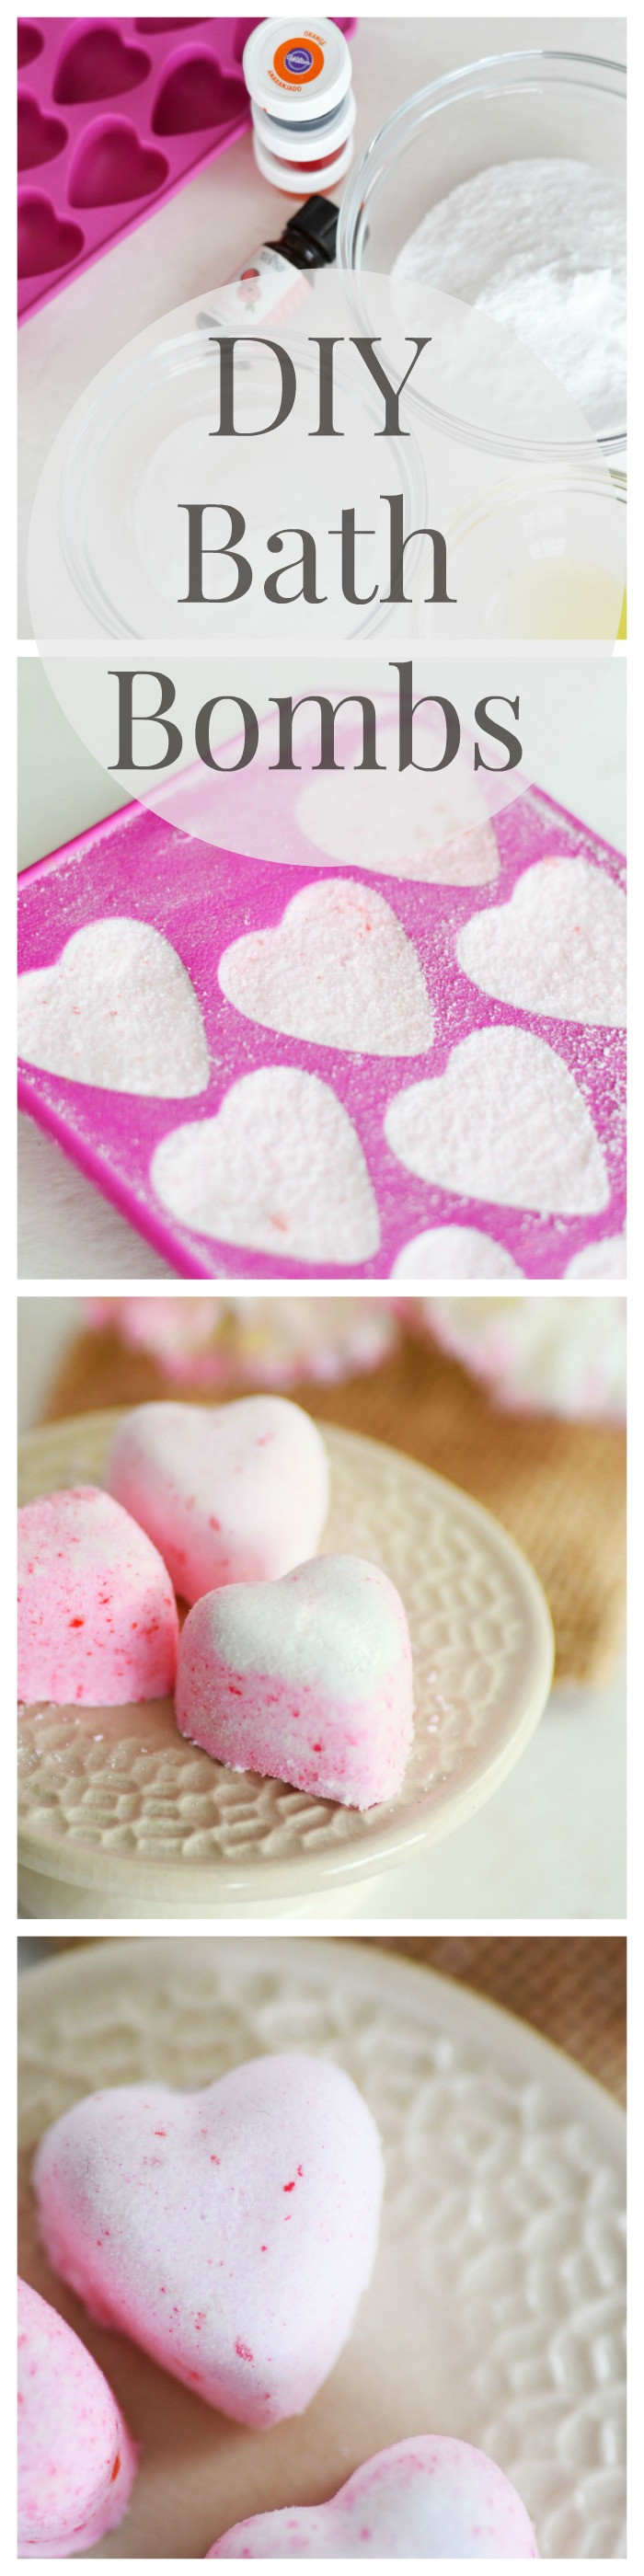 Best ideas about Bath Bombs DIY . Save or Pin How to Make Bath Bomb Fizzies ⋆ Savvy Saving Couple Now.